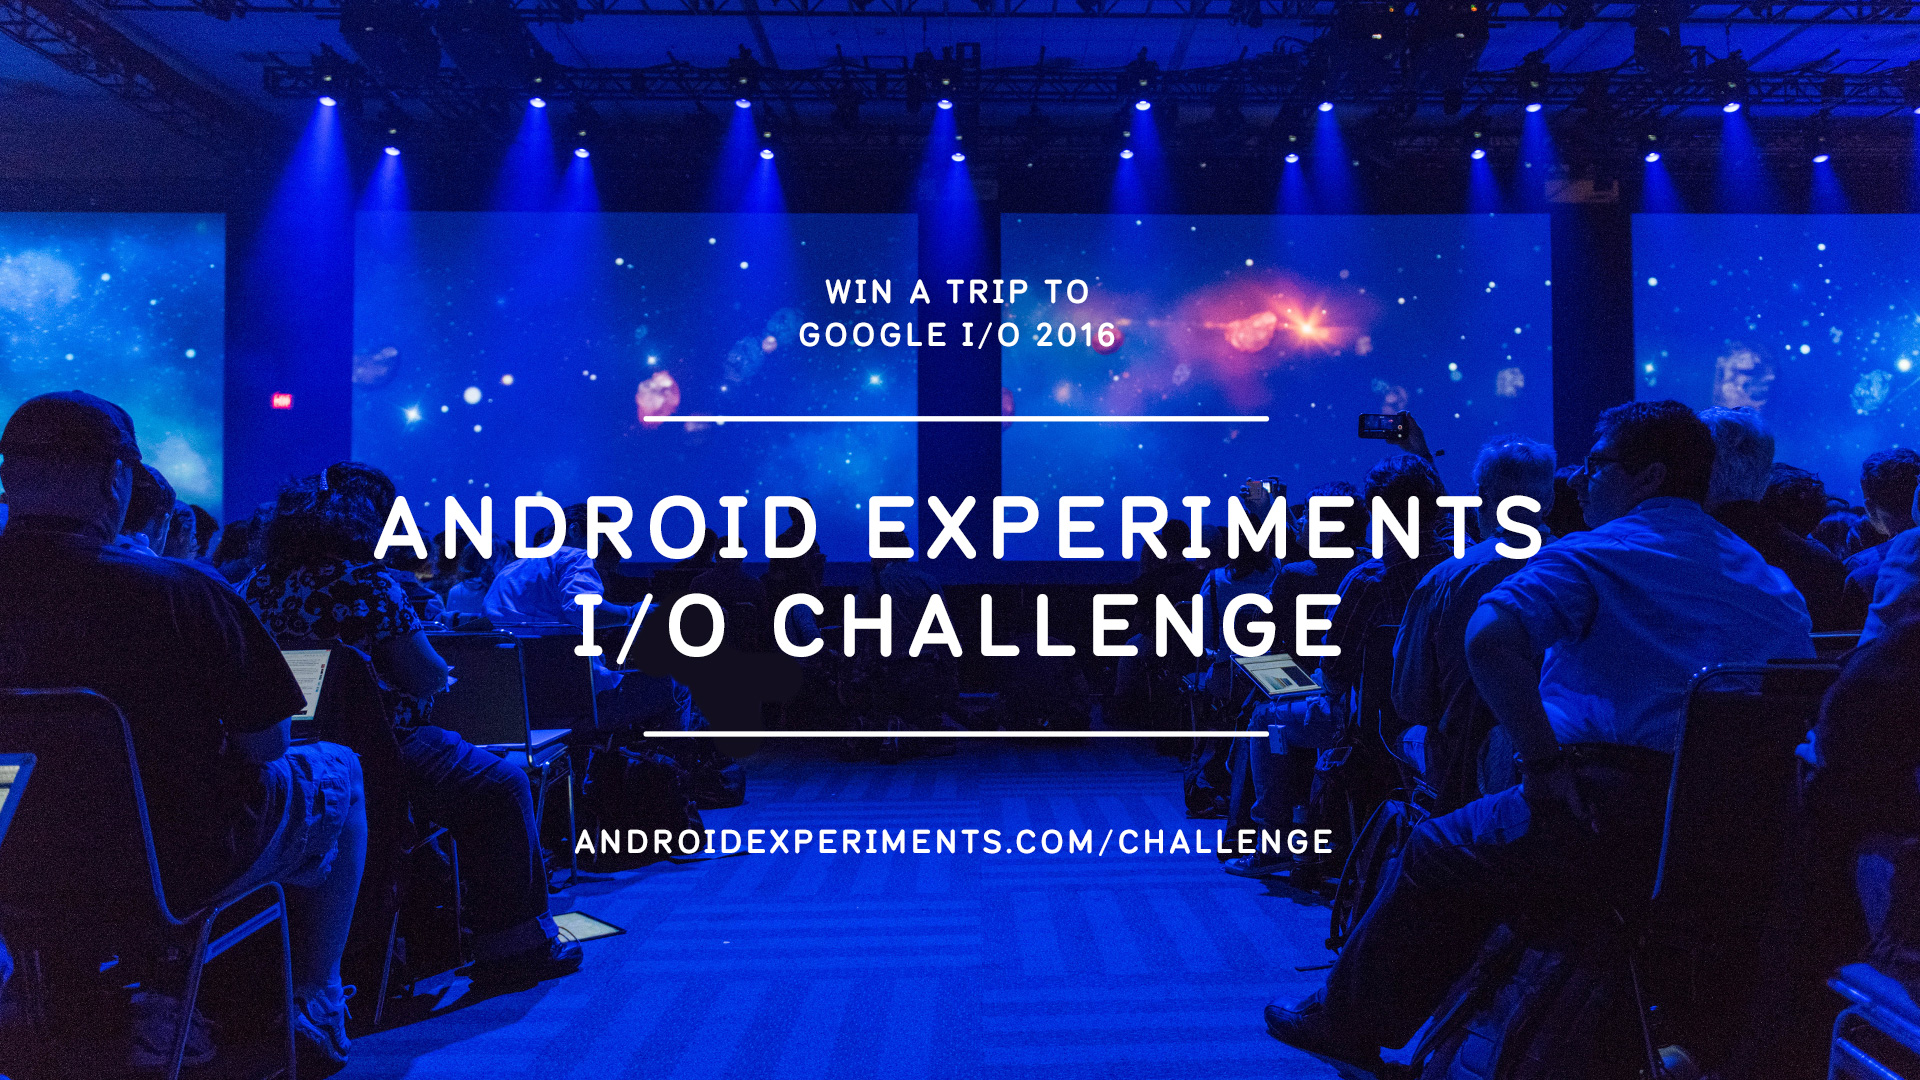 Google is looking for developers to do crazy experiments on Android 1